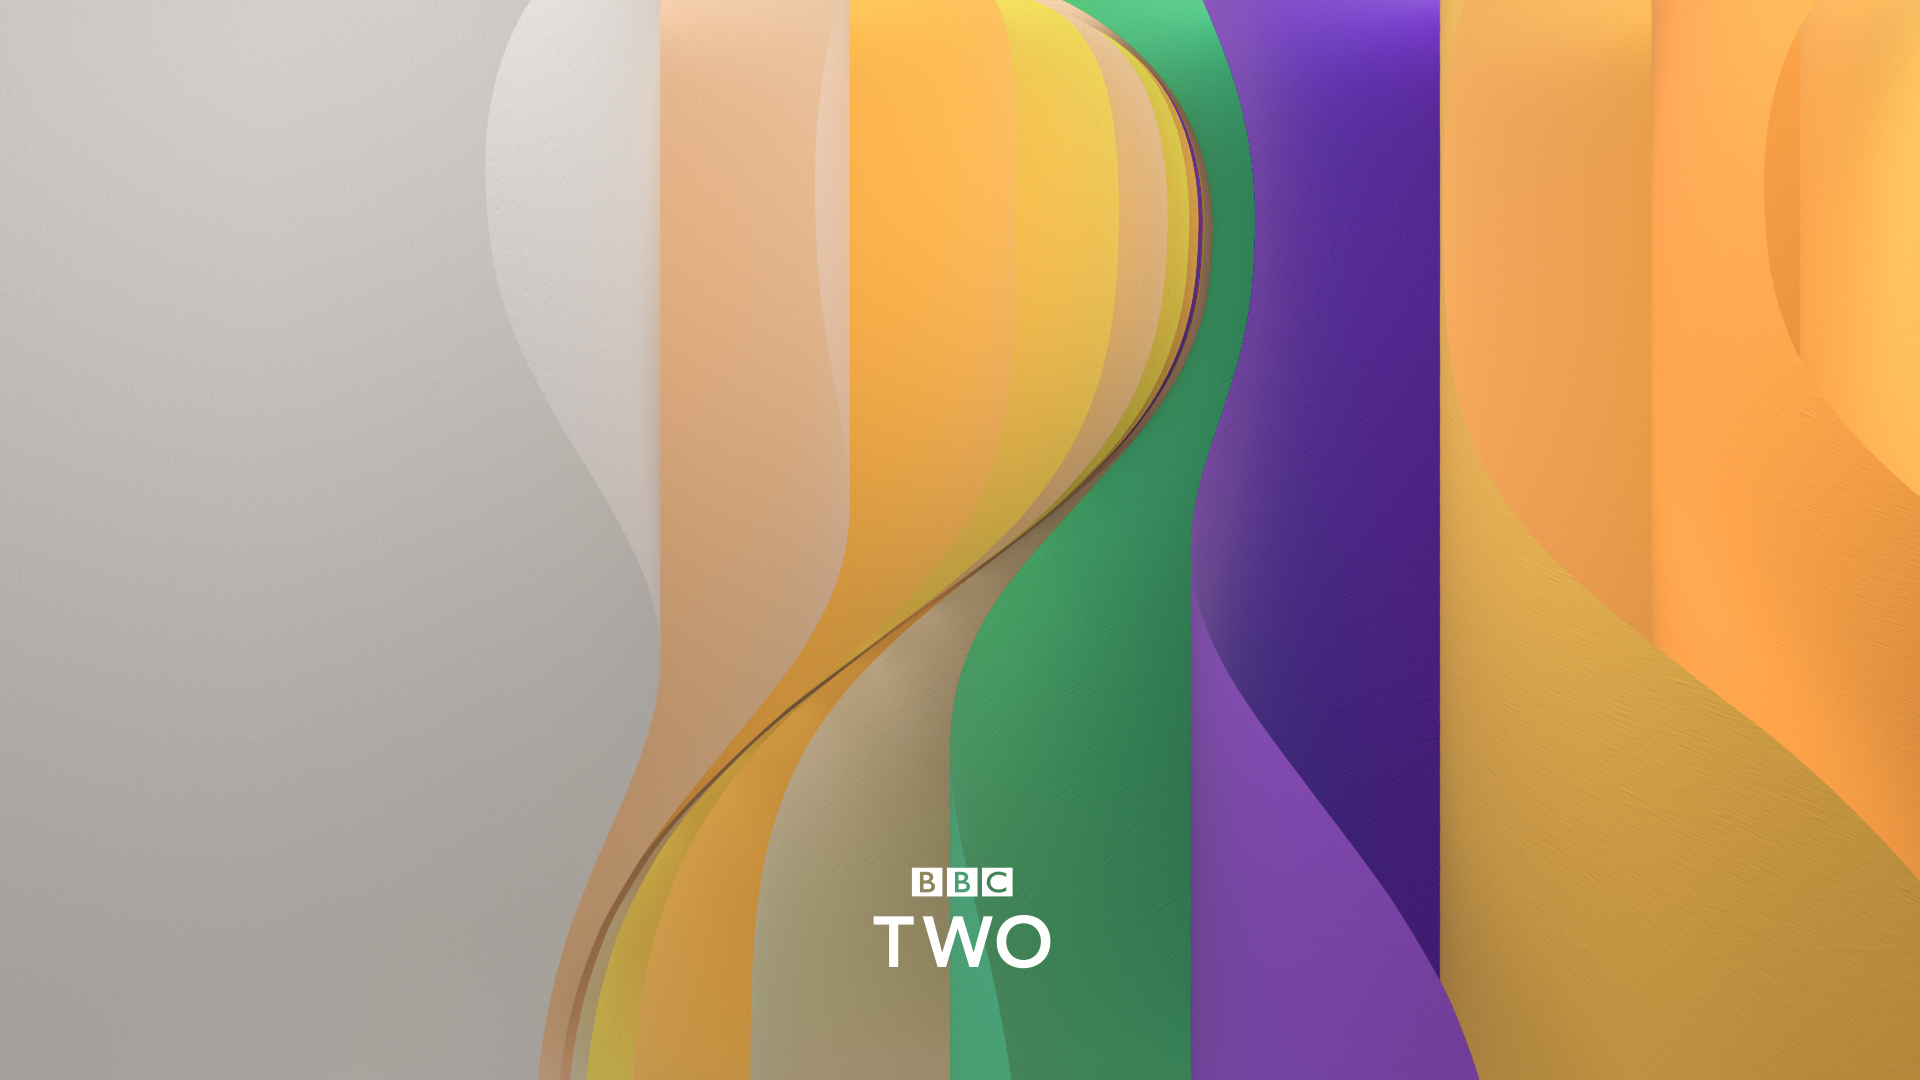 BBC_two_12